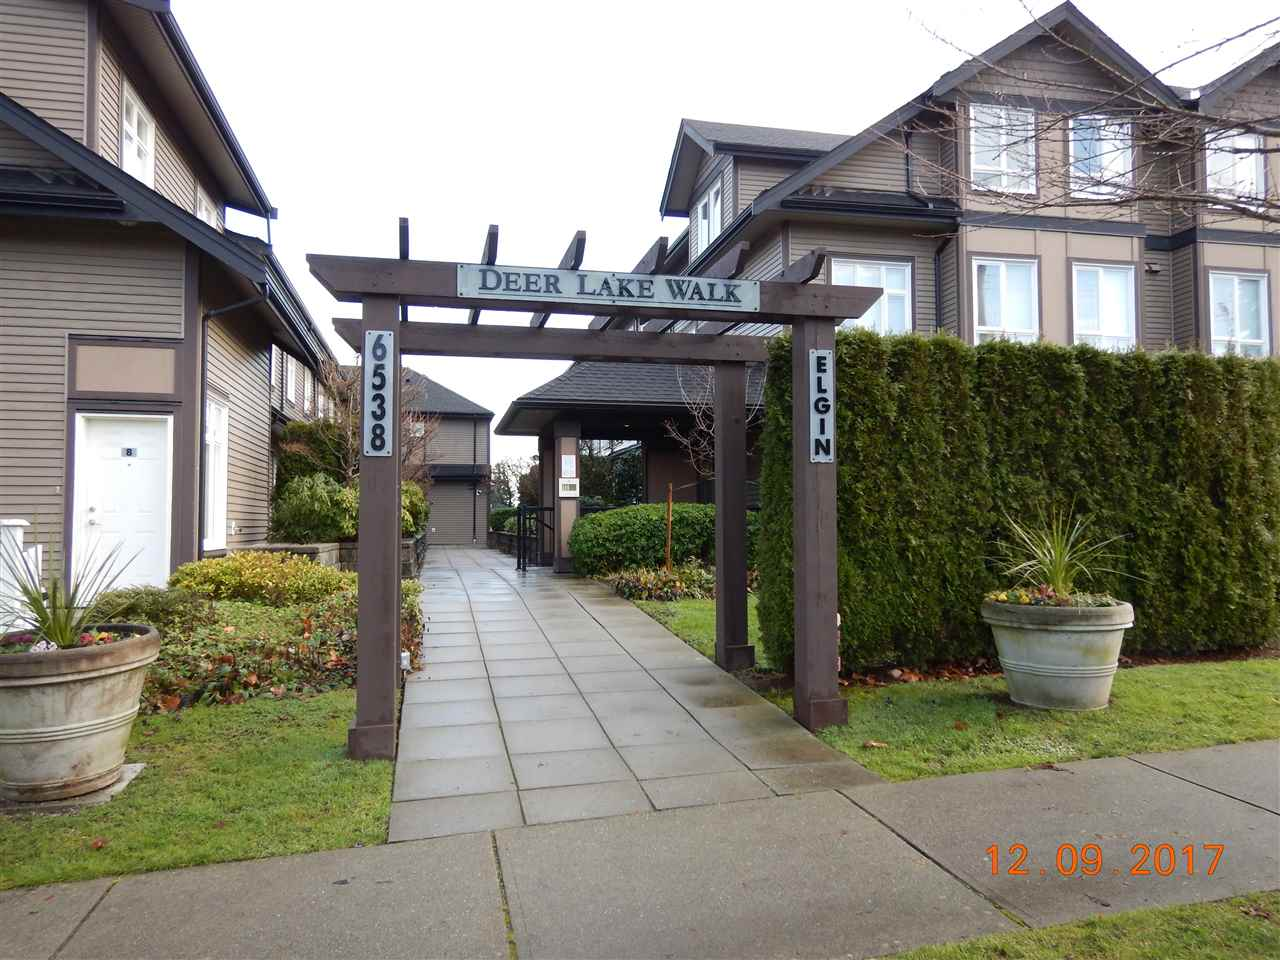 Deer Lake Walk - This deluxe 2 bedroom plus 2 den town home is designed and crafted for discriminating buyers.  It is highlighted with durable granite countertops, elegant laminate hardwood flooring, gleaming stainless steel appliances, solid maple cabinets and so much more.  Imagine living in this home which is just minutes away from a myriad of transportation options, endless shopping selections including Metrotown & Crystal Mall, recreational services, fine restaurants, great schools & lots more, 2 parking stalls #31 and #40.